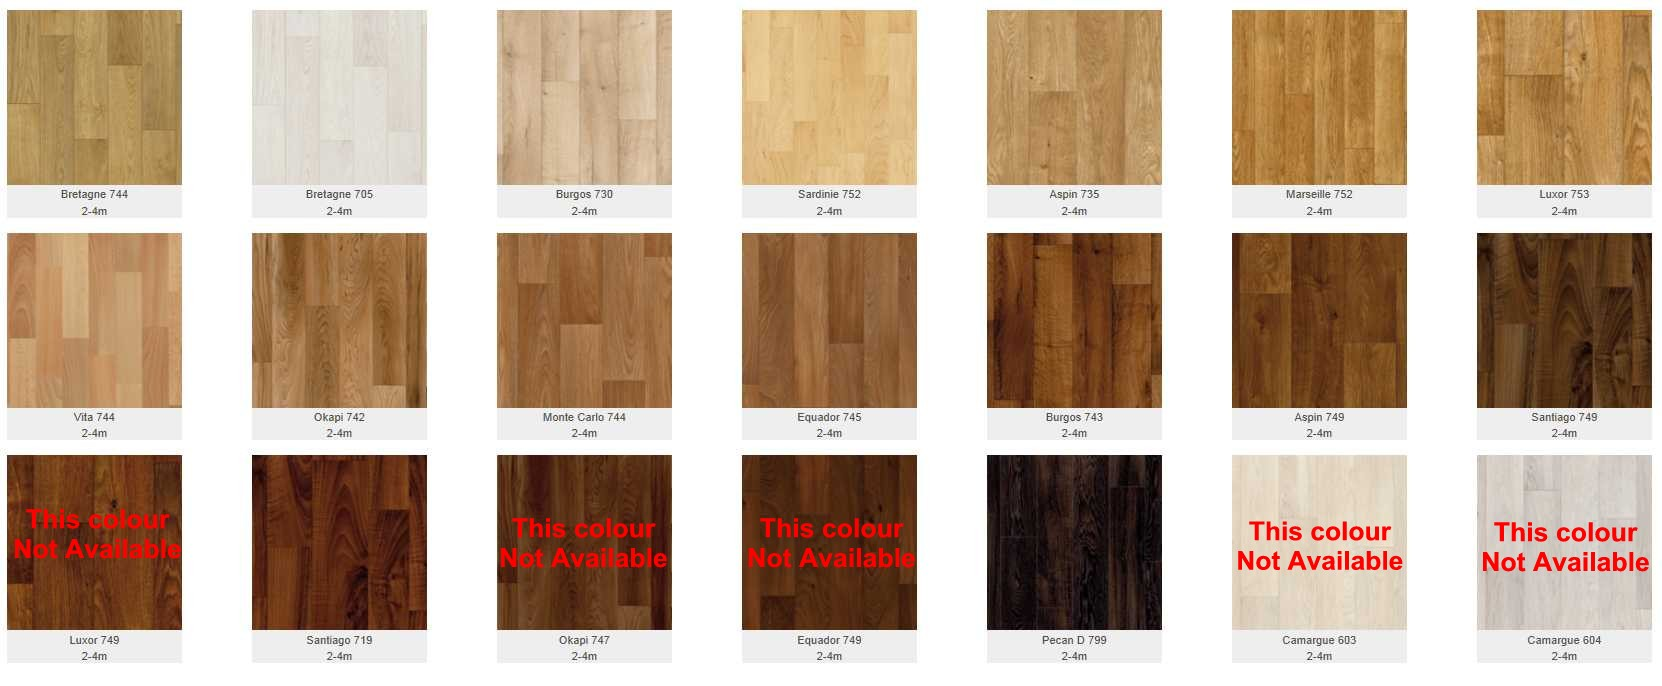 Concept wood swatchg 1662686 pixels vinyl wood flooring concept wood swatchg 1662686 pixels vinyl wood flooring ideas pinterest flooring ideas wood flooring and woods dailygadgetfo Image collections